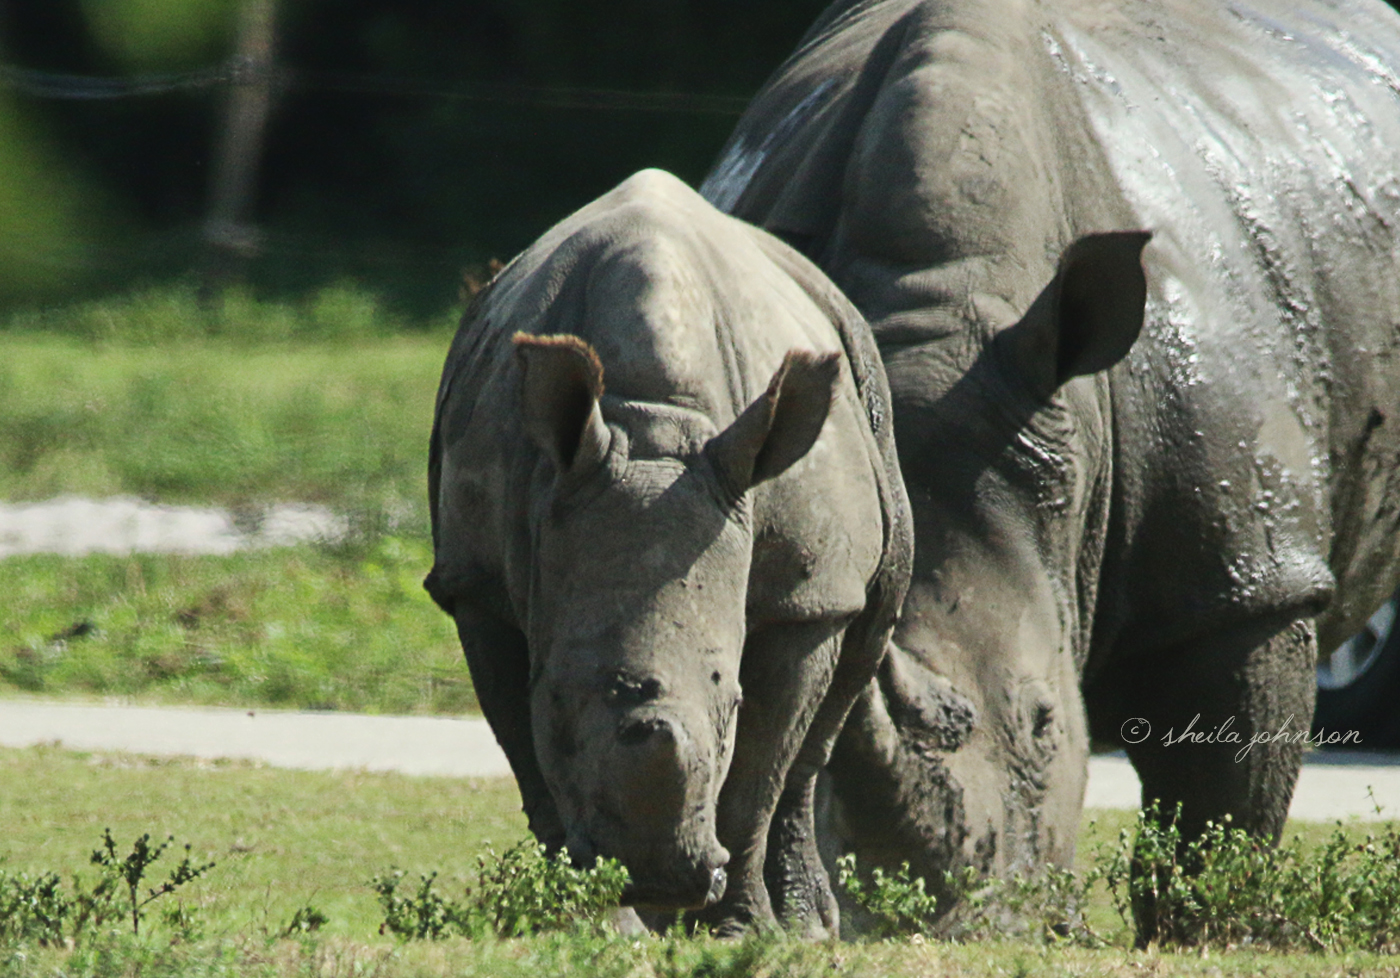 The Southern White Rhinoceros At Lion Country Safari Are Part Of The Species Survival Plan, And This Baby Is One Small Step Toward Getting This Rhino Species Removed From The Threatened List.